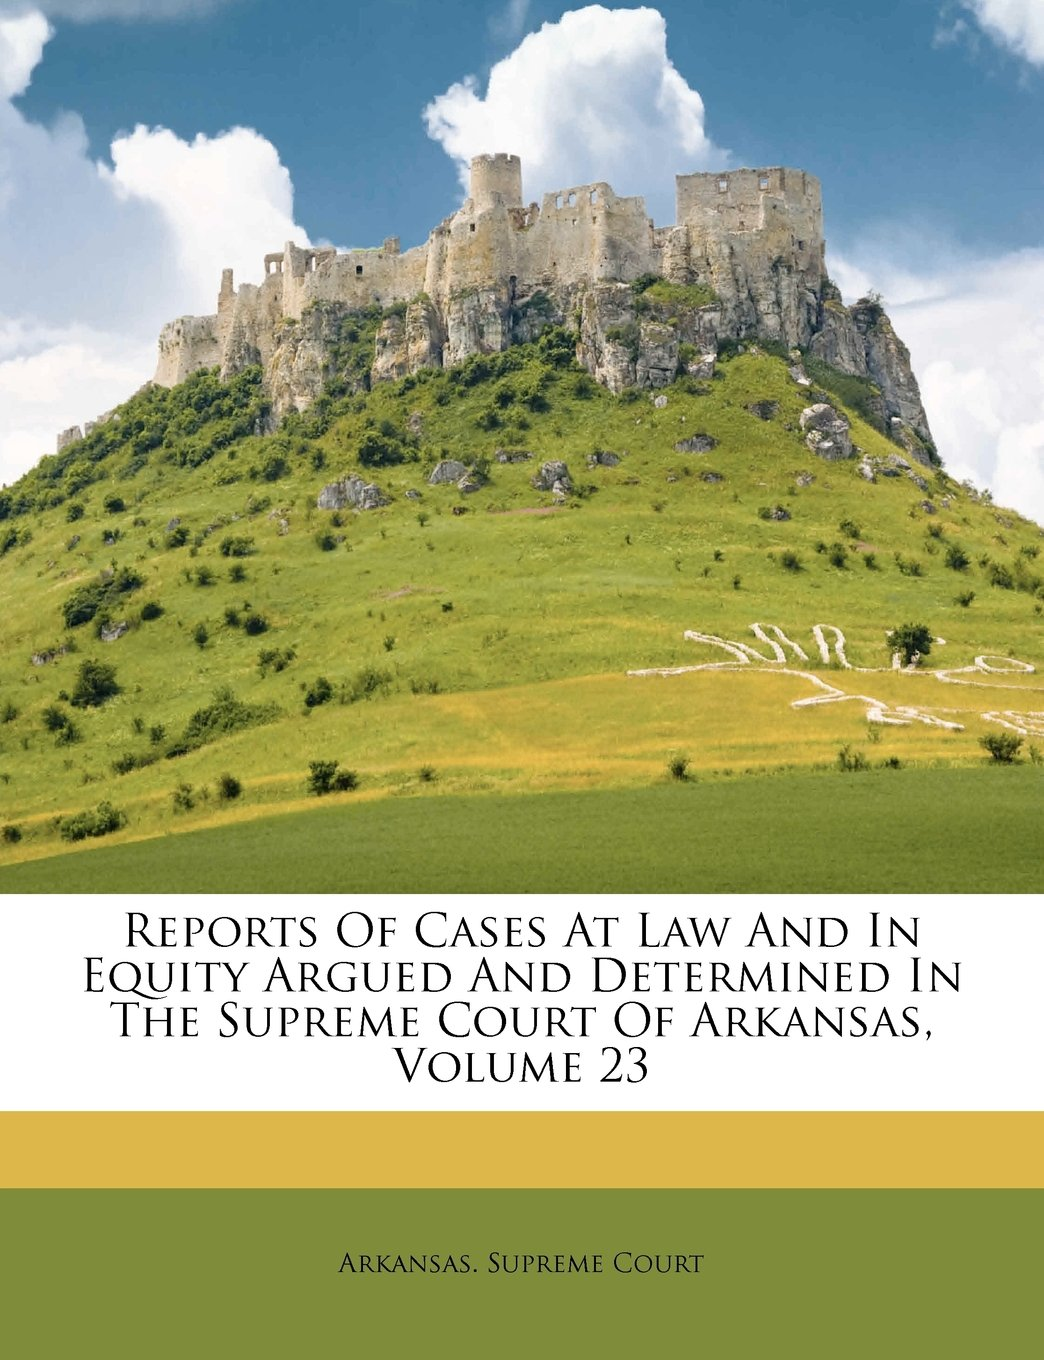 Reports Of Cases At Law And In Equity Argued And Determined In The Supreme Court Of Arkansas, Volume 23 ebook